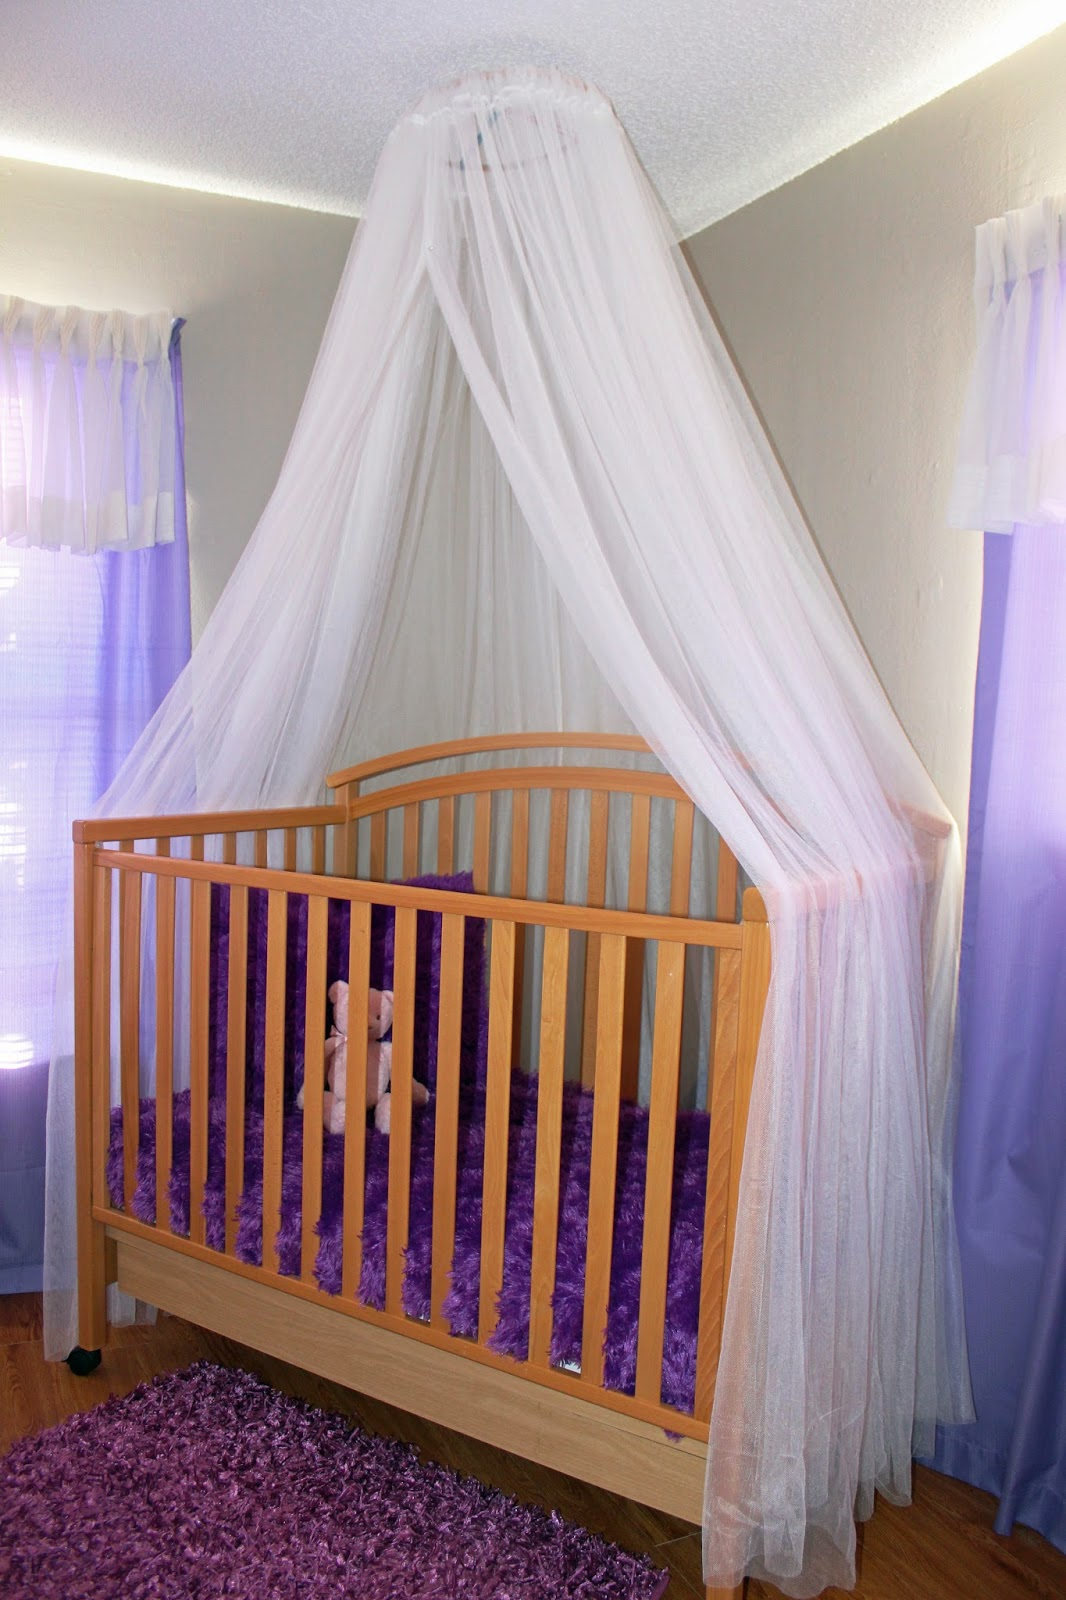 DIY: How To Make A Crib Canopy